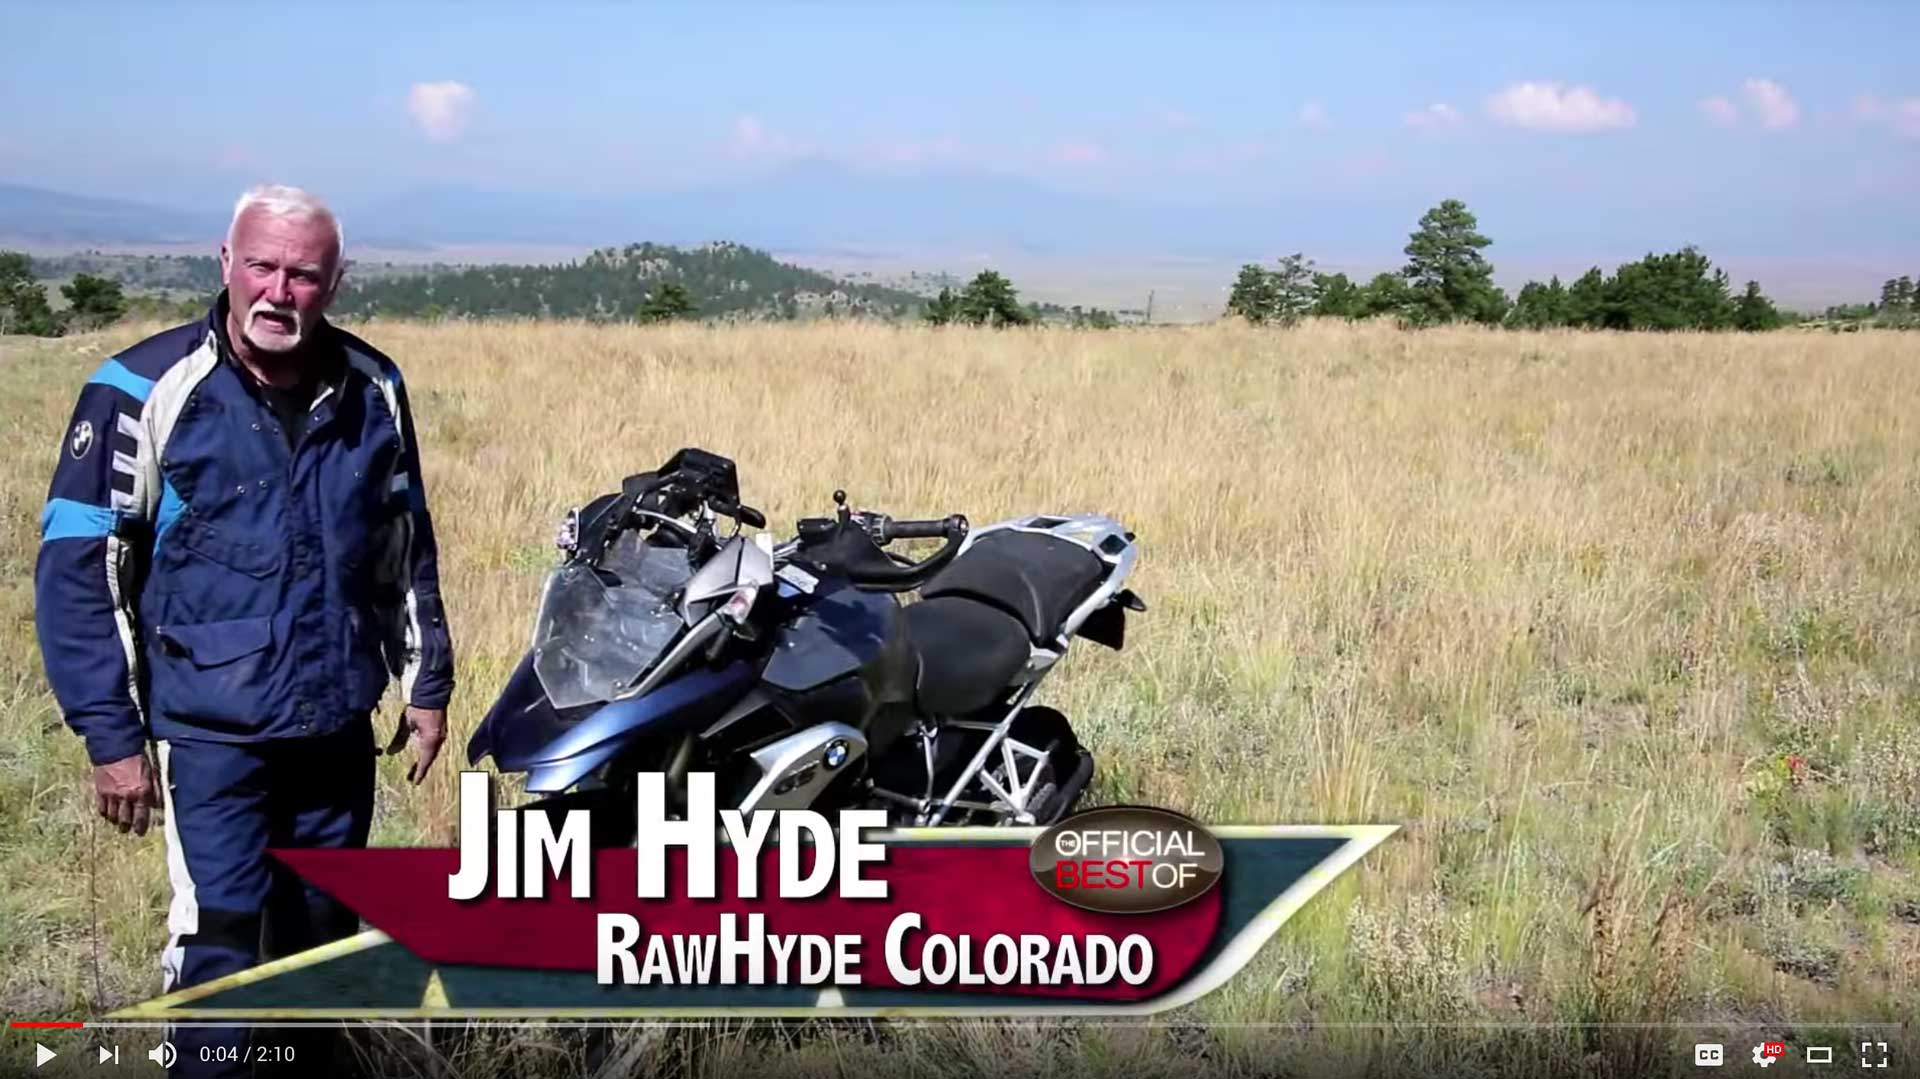 RawHyde Colorado - Best Adventure Motorcycle Training & Tours - Colorado 2015